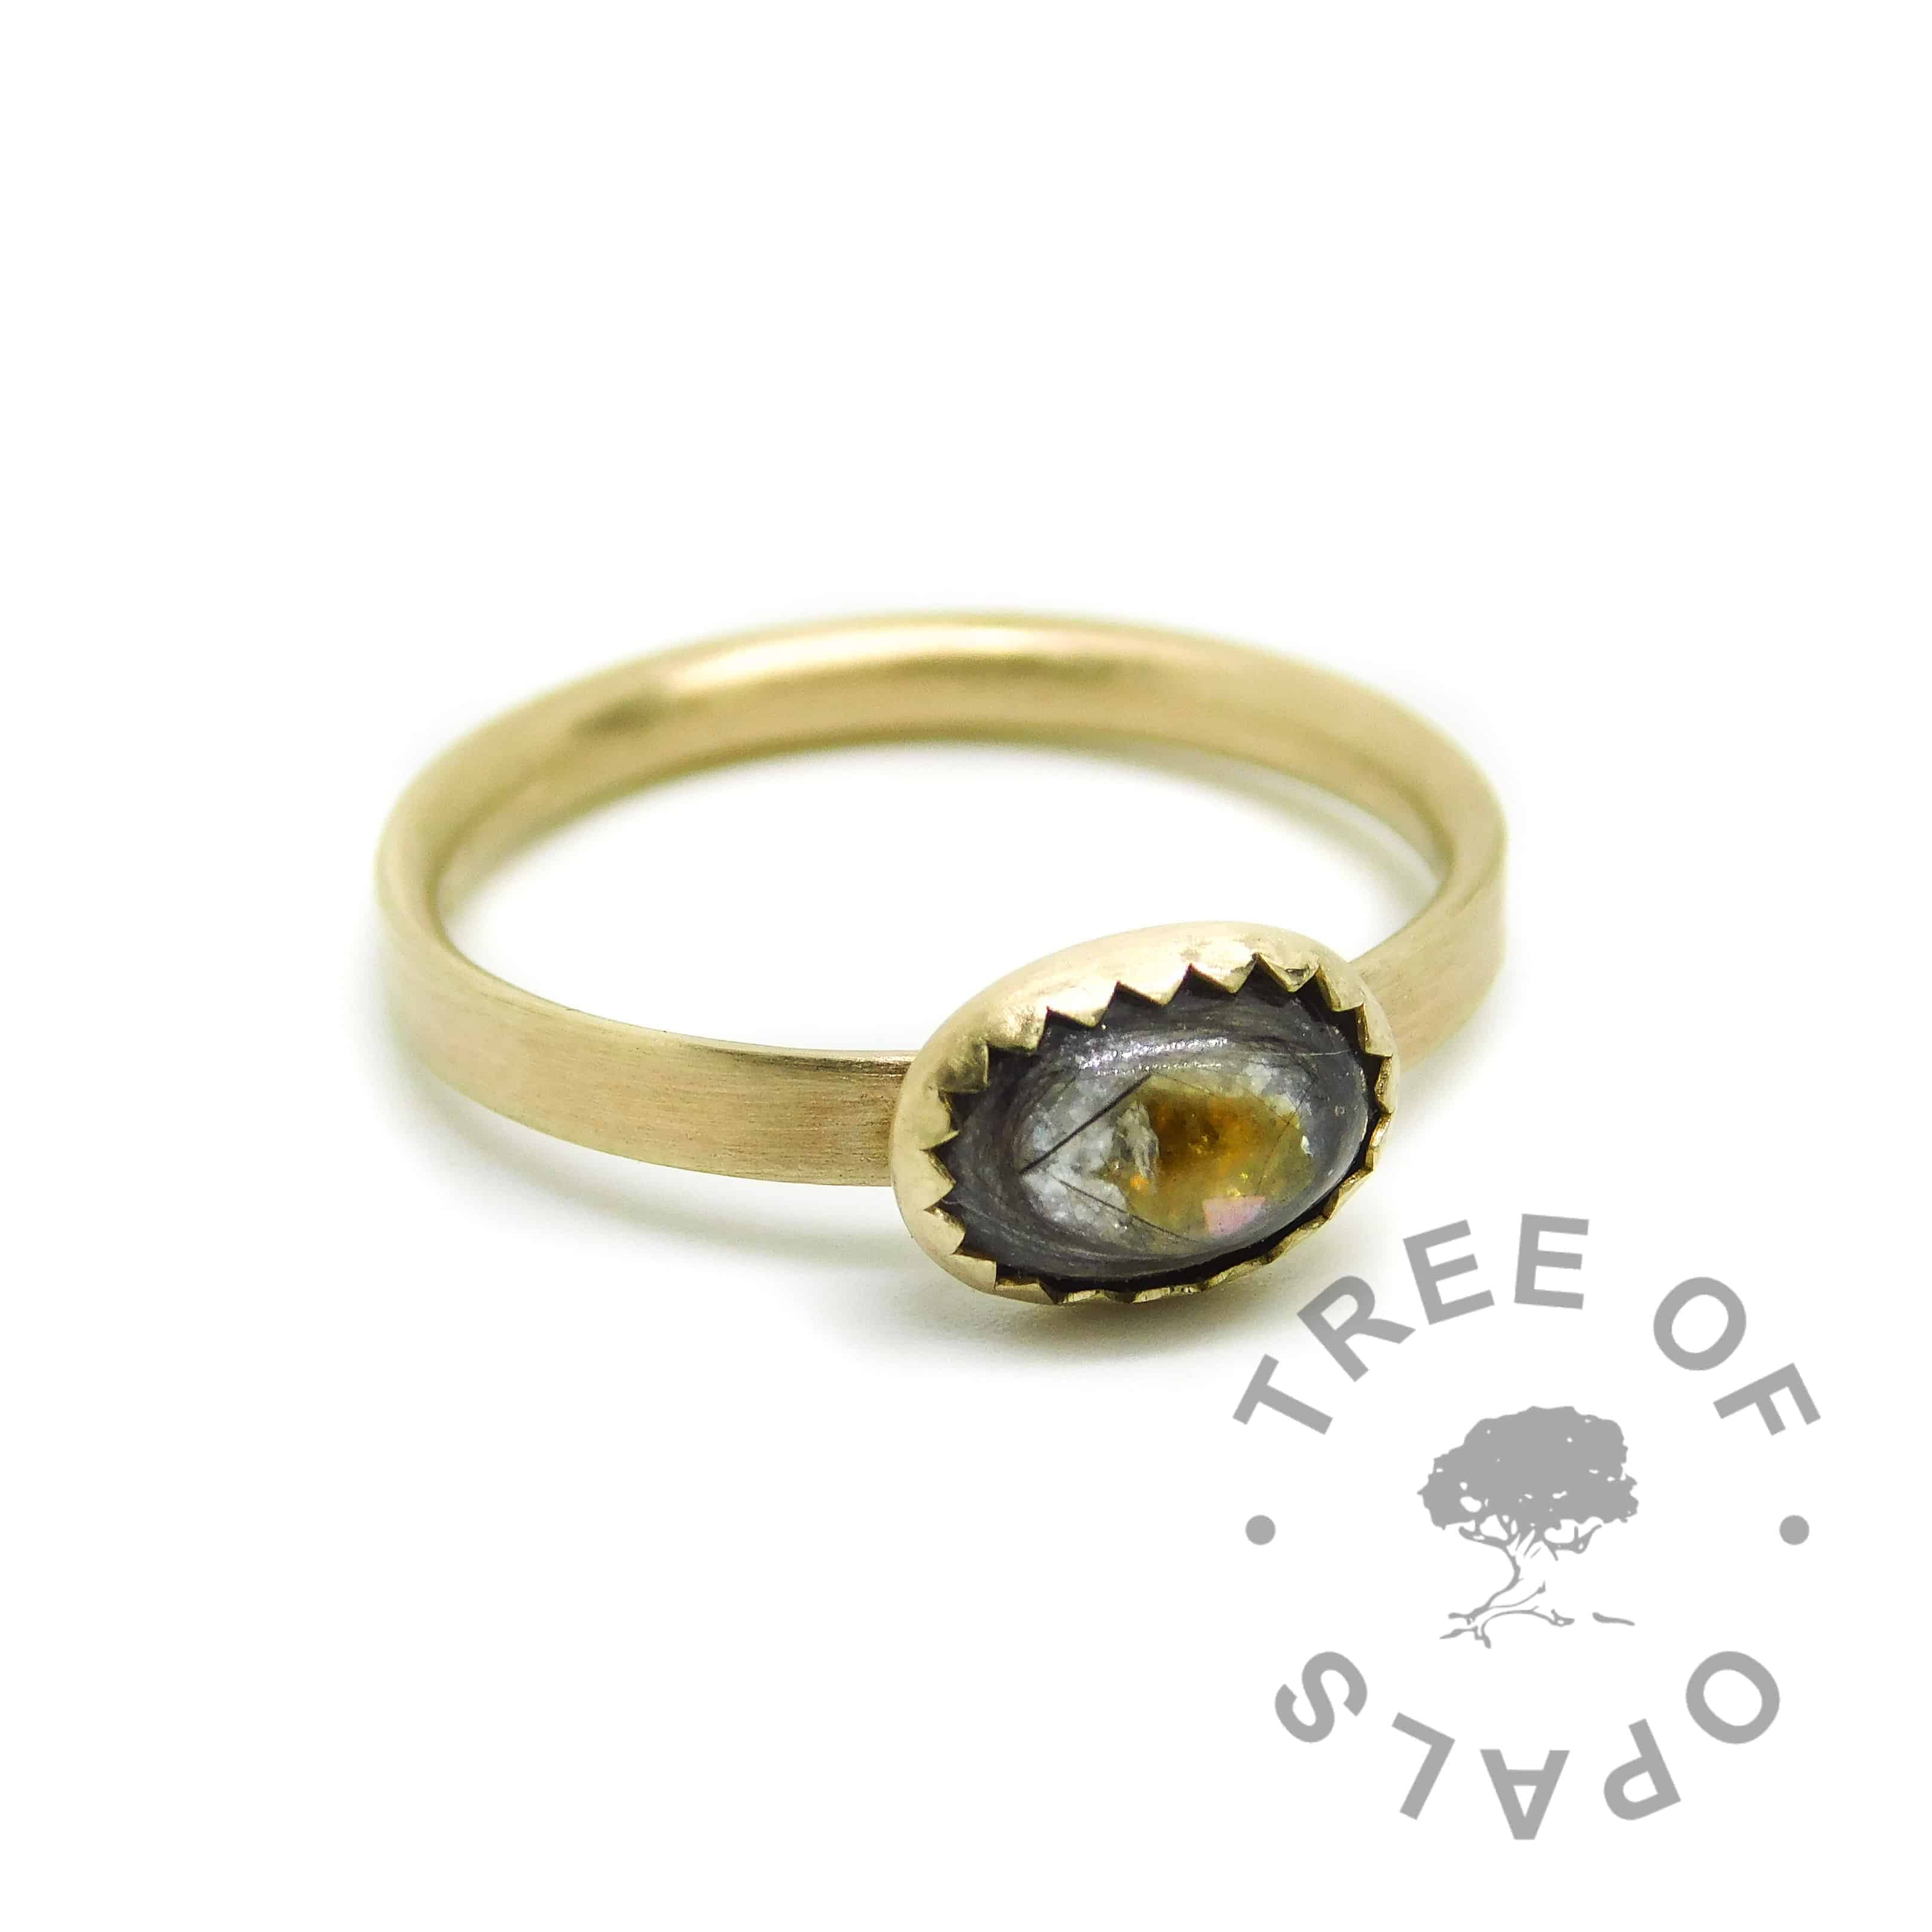 lock of ring and cremation ash gold ring with unicorn white resin sparkle mix, rough natural yellow topaz November birthstone. Handmade brushed 14ct gold ring shank, 8x6mm serrated bezel cup. Watermarked copyright Tree of Opals memorial jewellery image